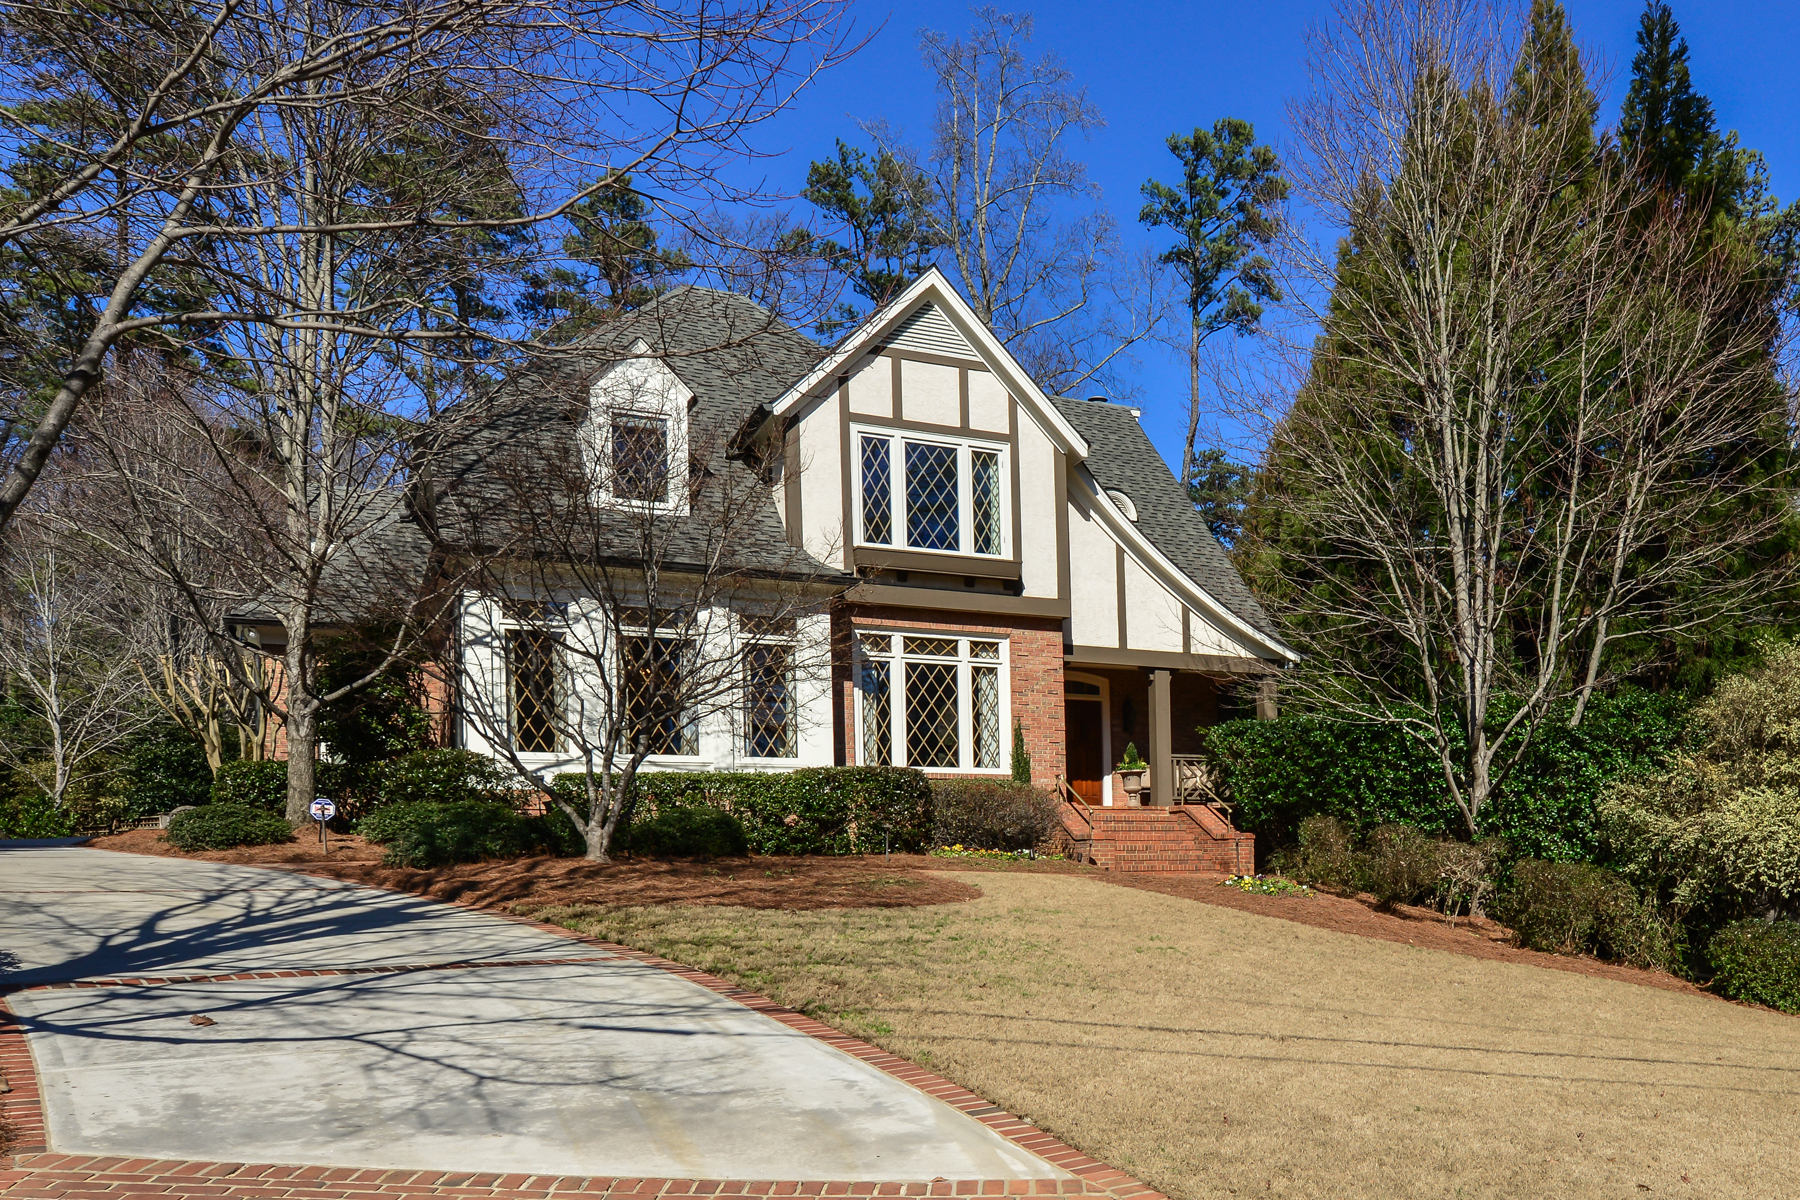 Single Family Home for Sale at Exceptional Brookhaven With Master On Main And Pool 4367 West Club Drive NE Brookhaven, Atlanta, Georgia, 30319 United States